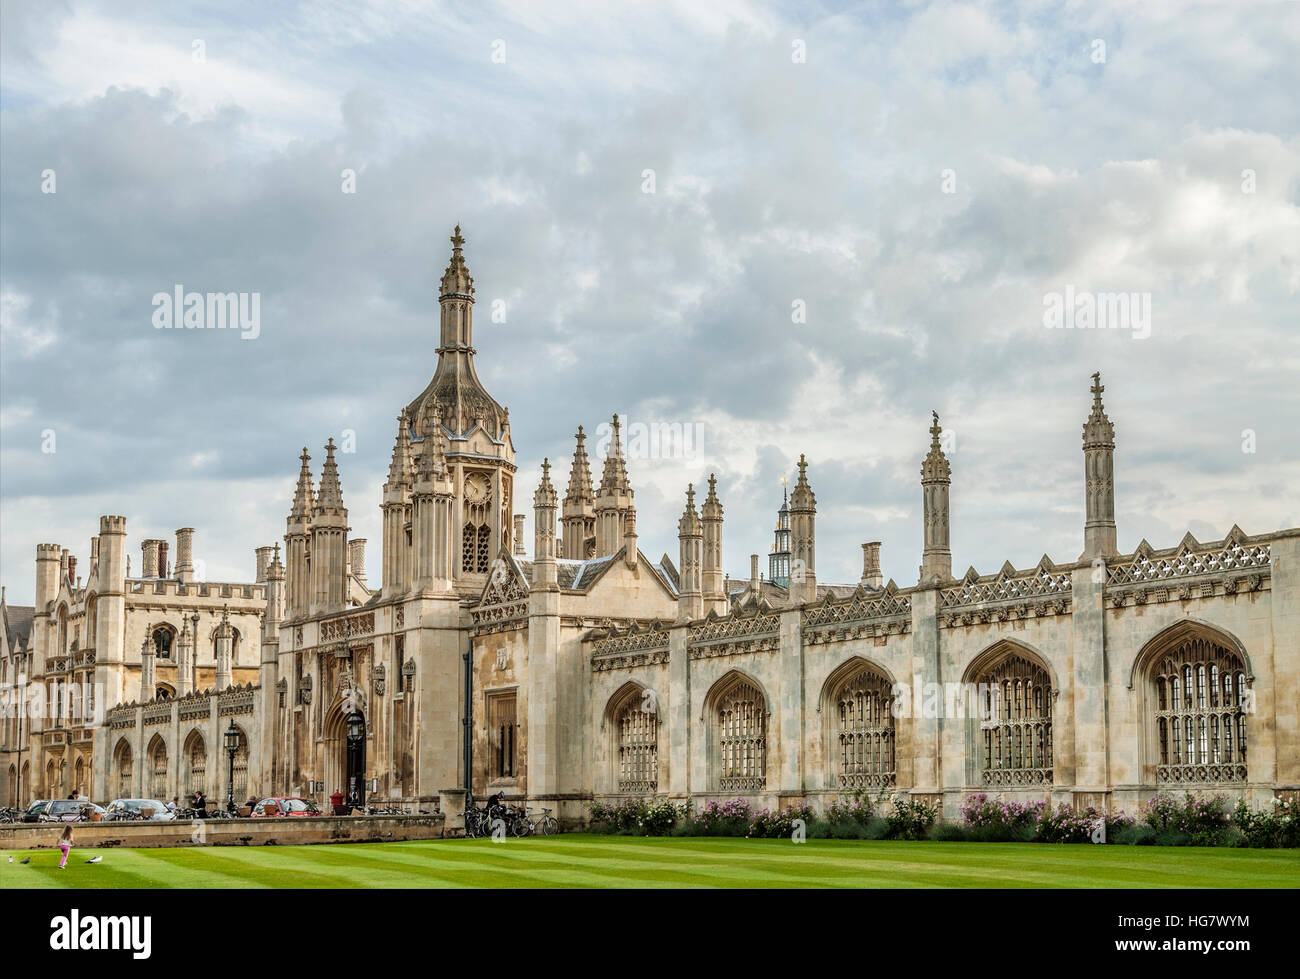 King's College Gate House at the University City Cambridge, England. | King's College Gate House in Cambridge, - Stock Image